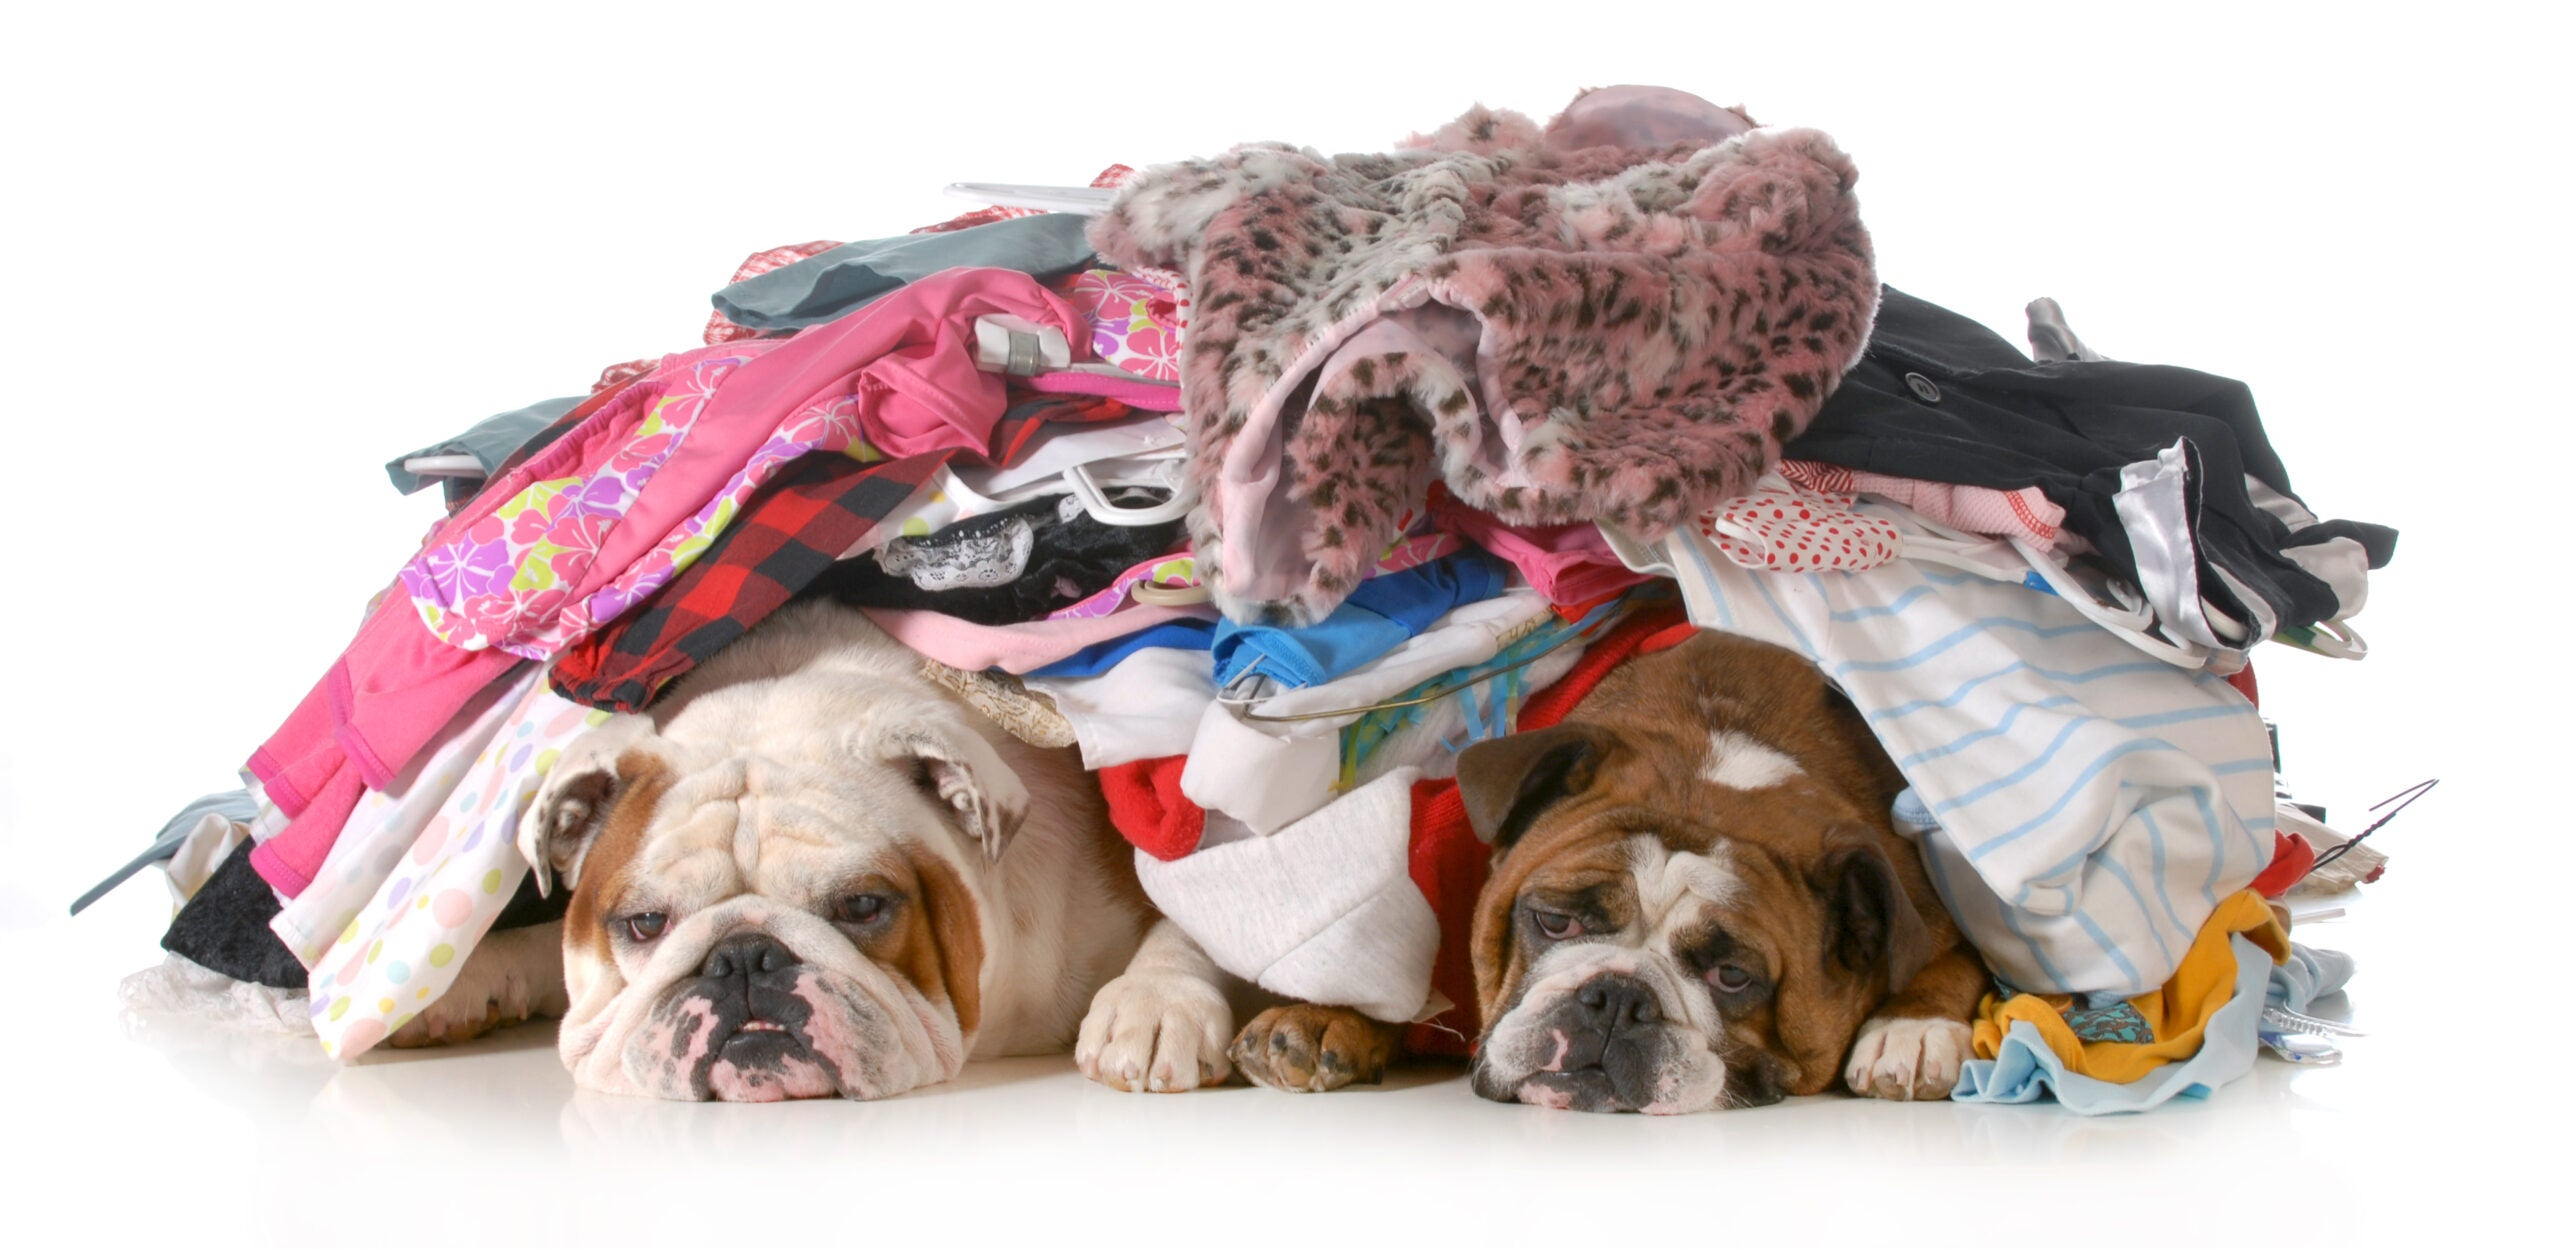 dogs in pile of dirty laundry